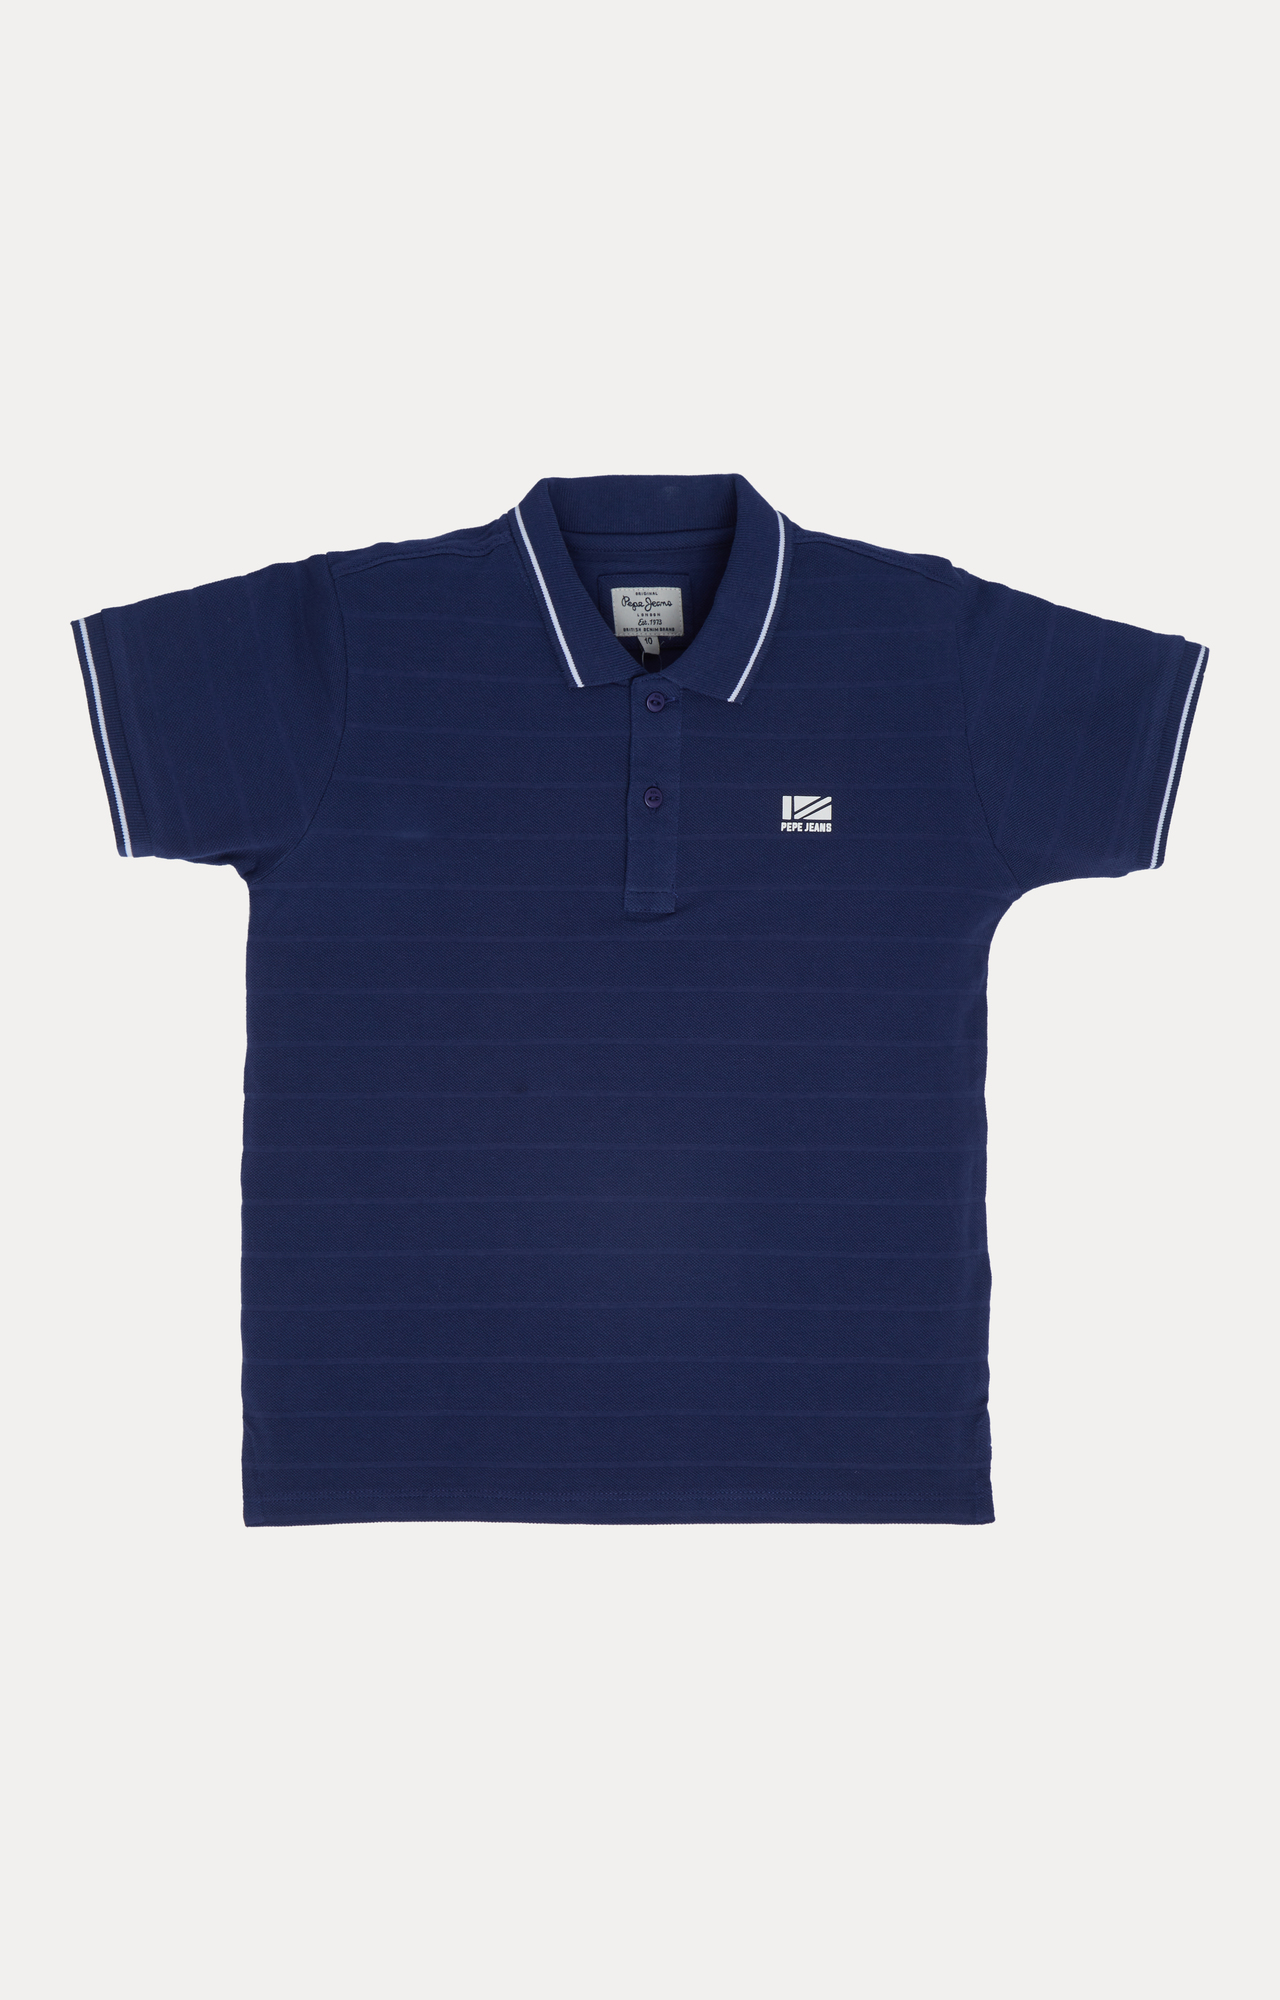 Pepe Jeans   Navy Solid T-Shirt